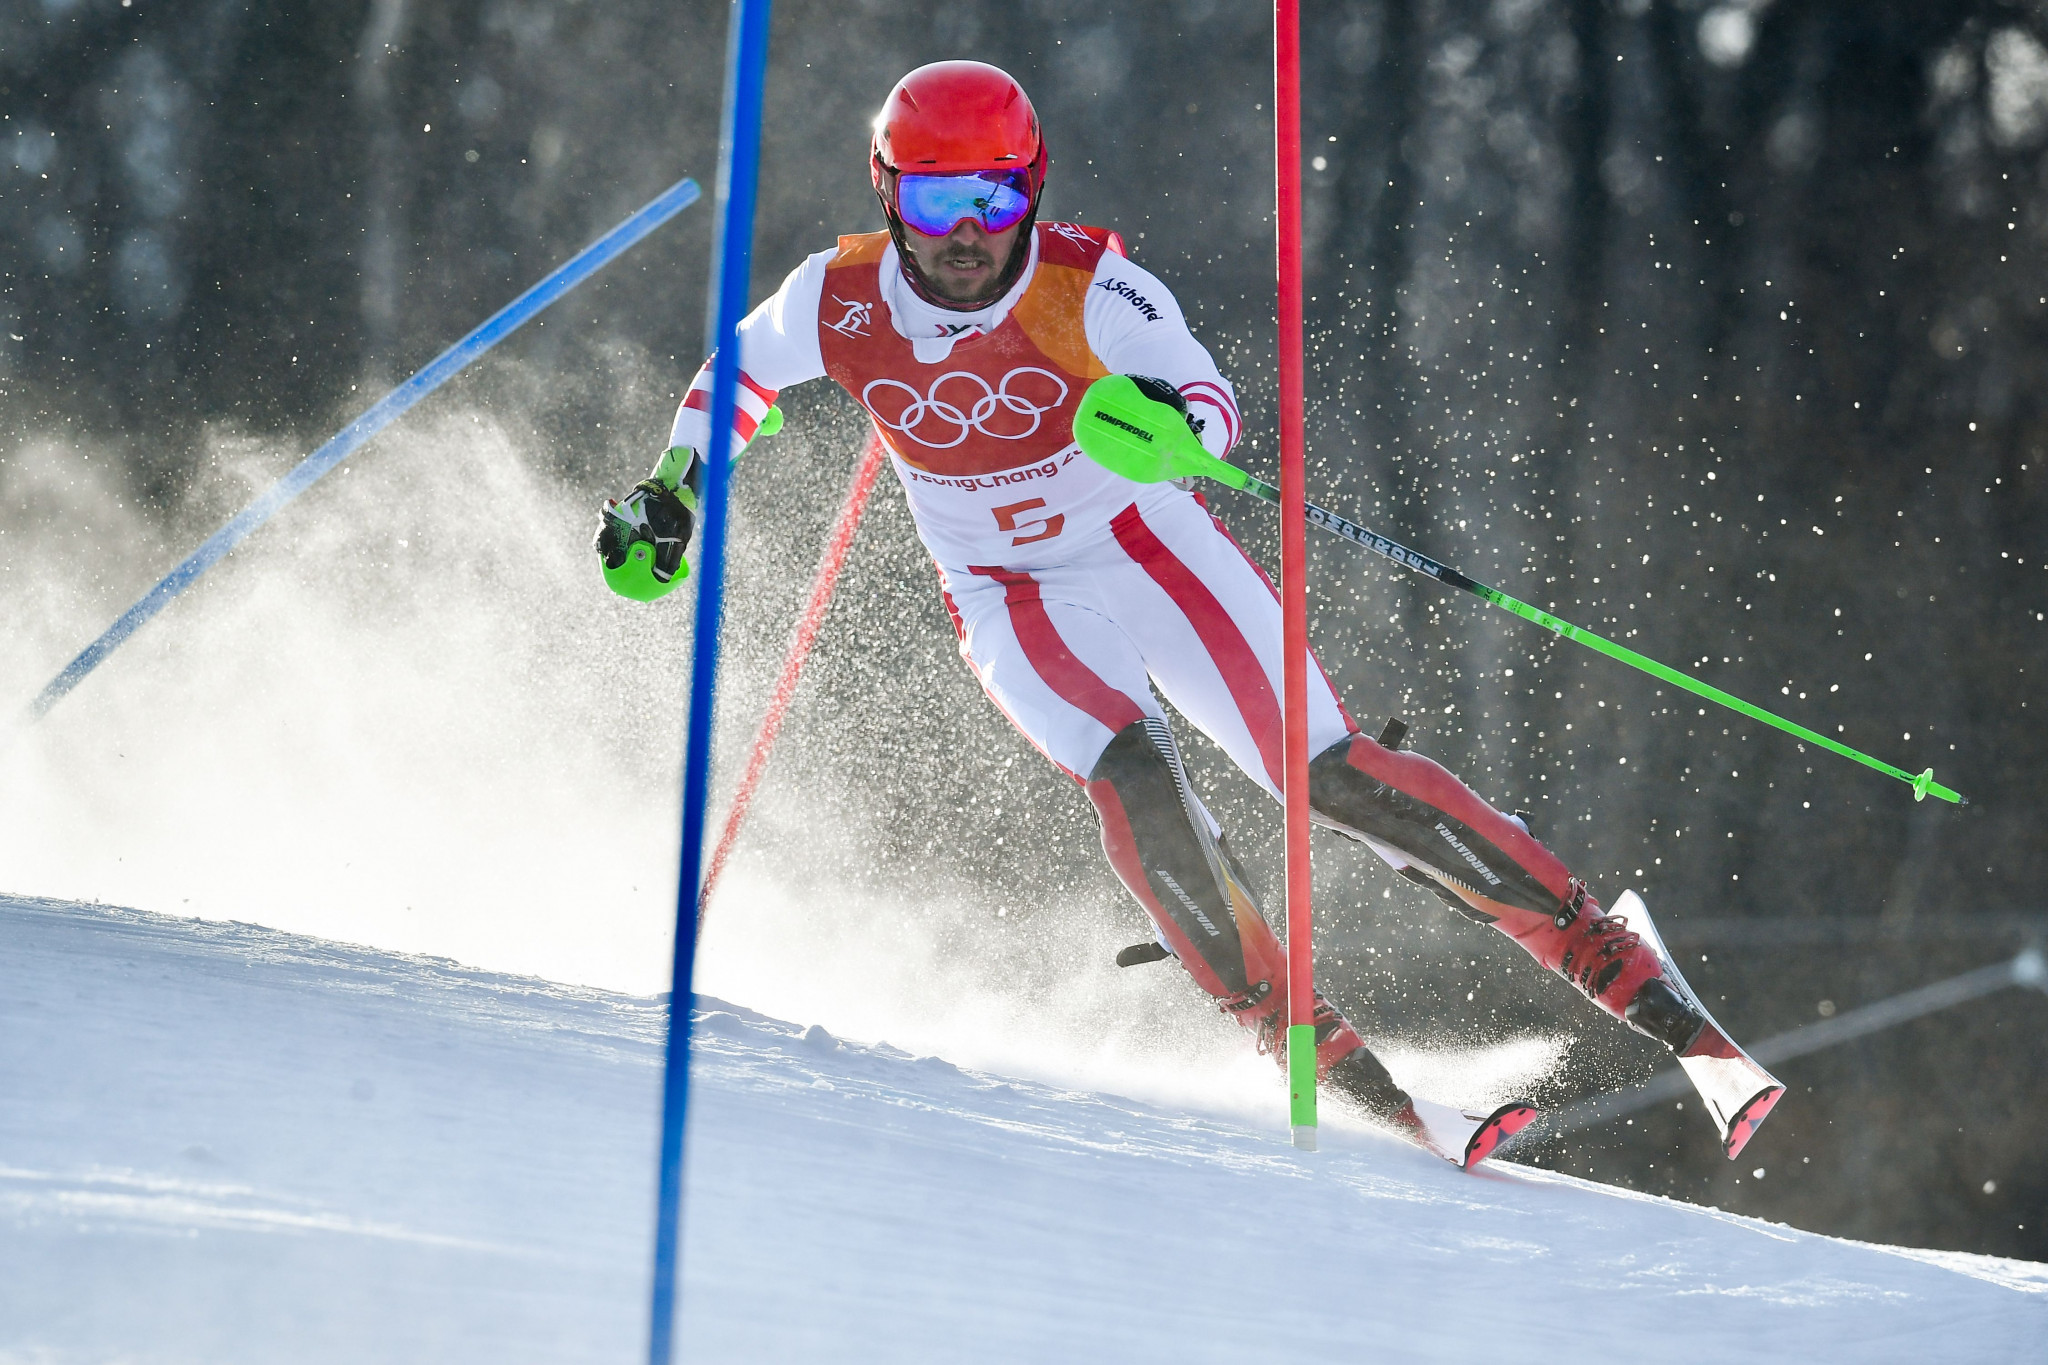 Marcel Hirscher won double Olympic gold at Pyeongchang 2018 ©Getty Images